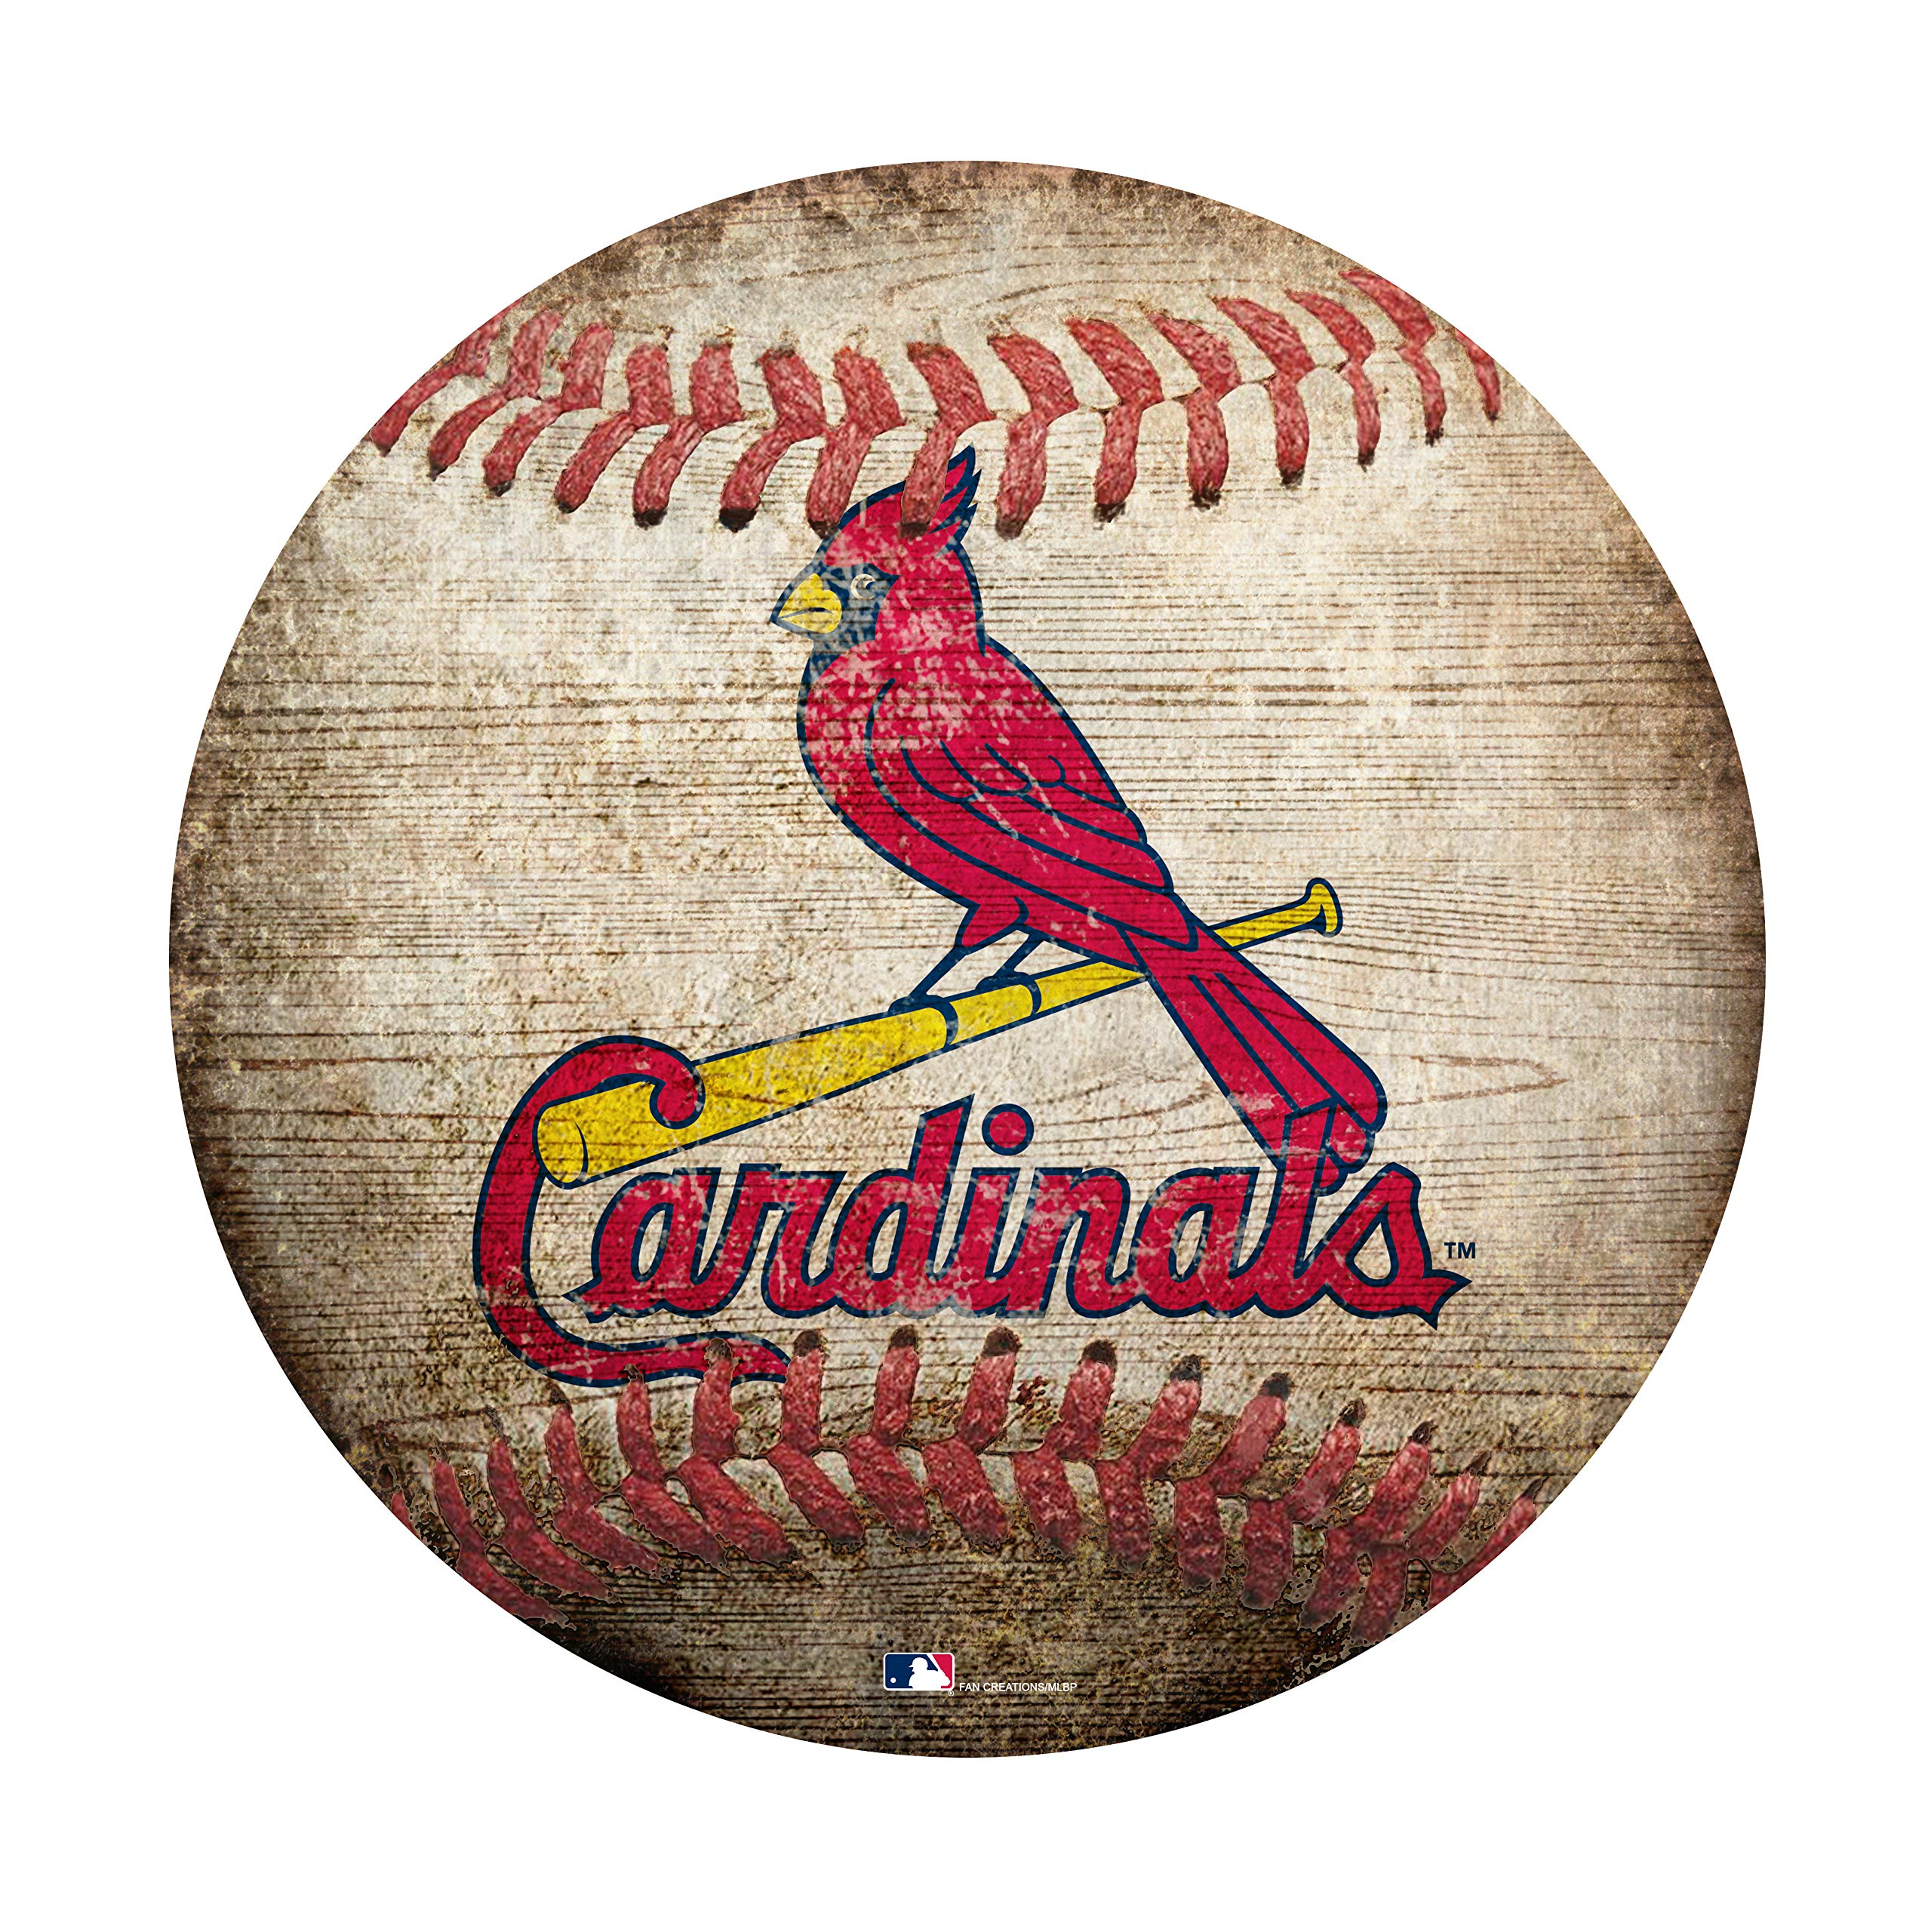 Fan Creations MLB St. Louis Cardinals 12'' Baseball Shaped Sign by Fan Creations